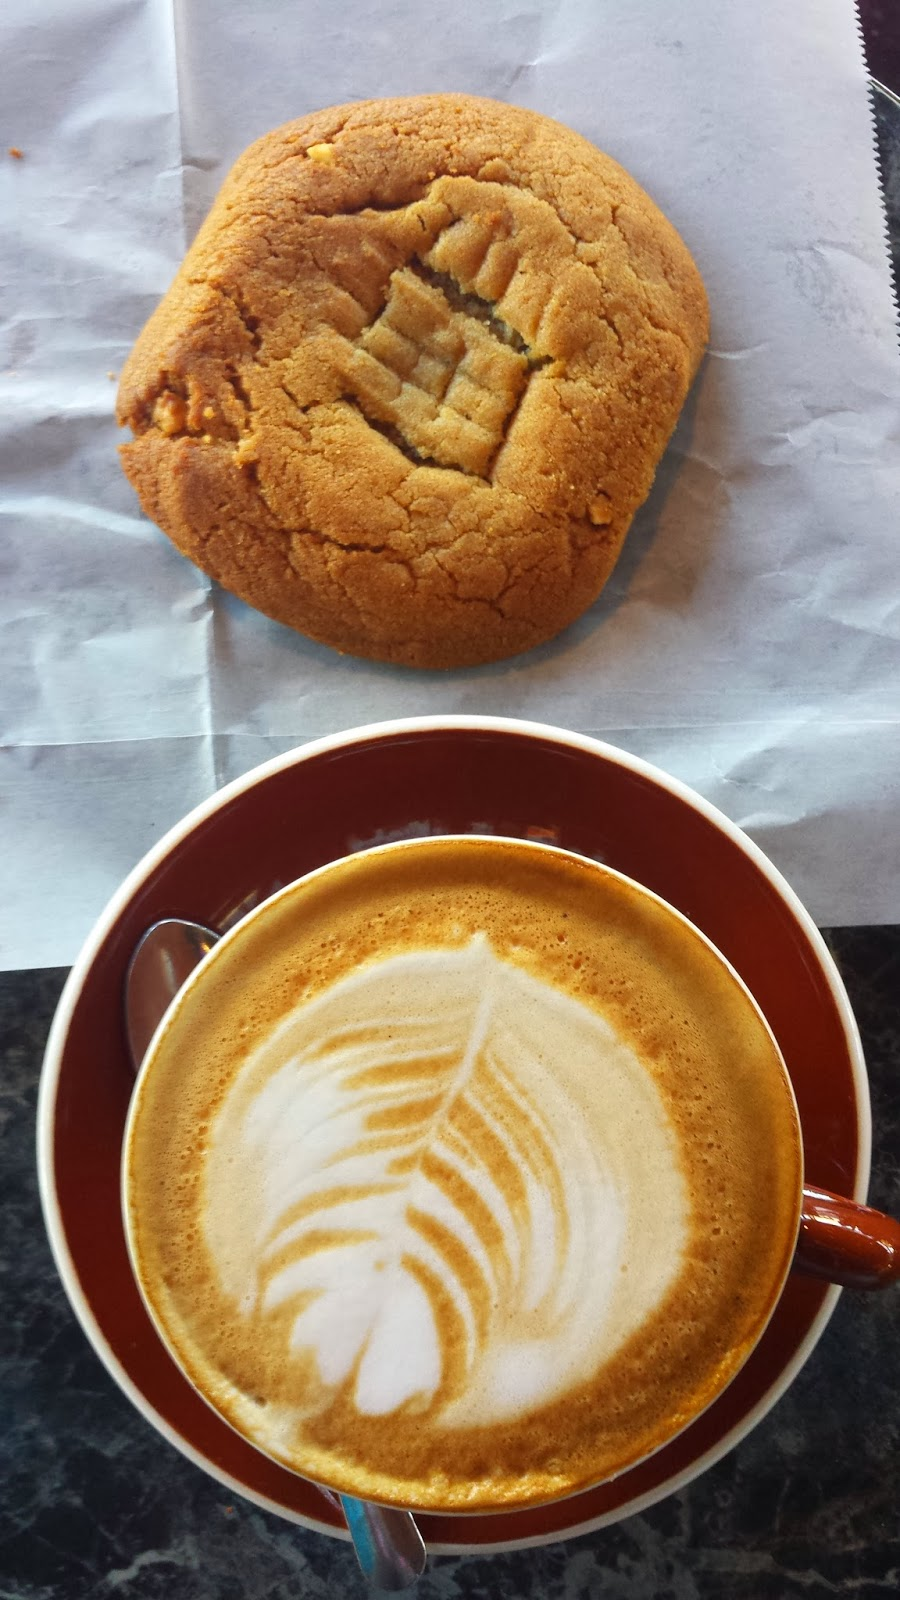 peanut butter cookie and cap from Caffe Trieste, Berkeley